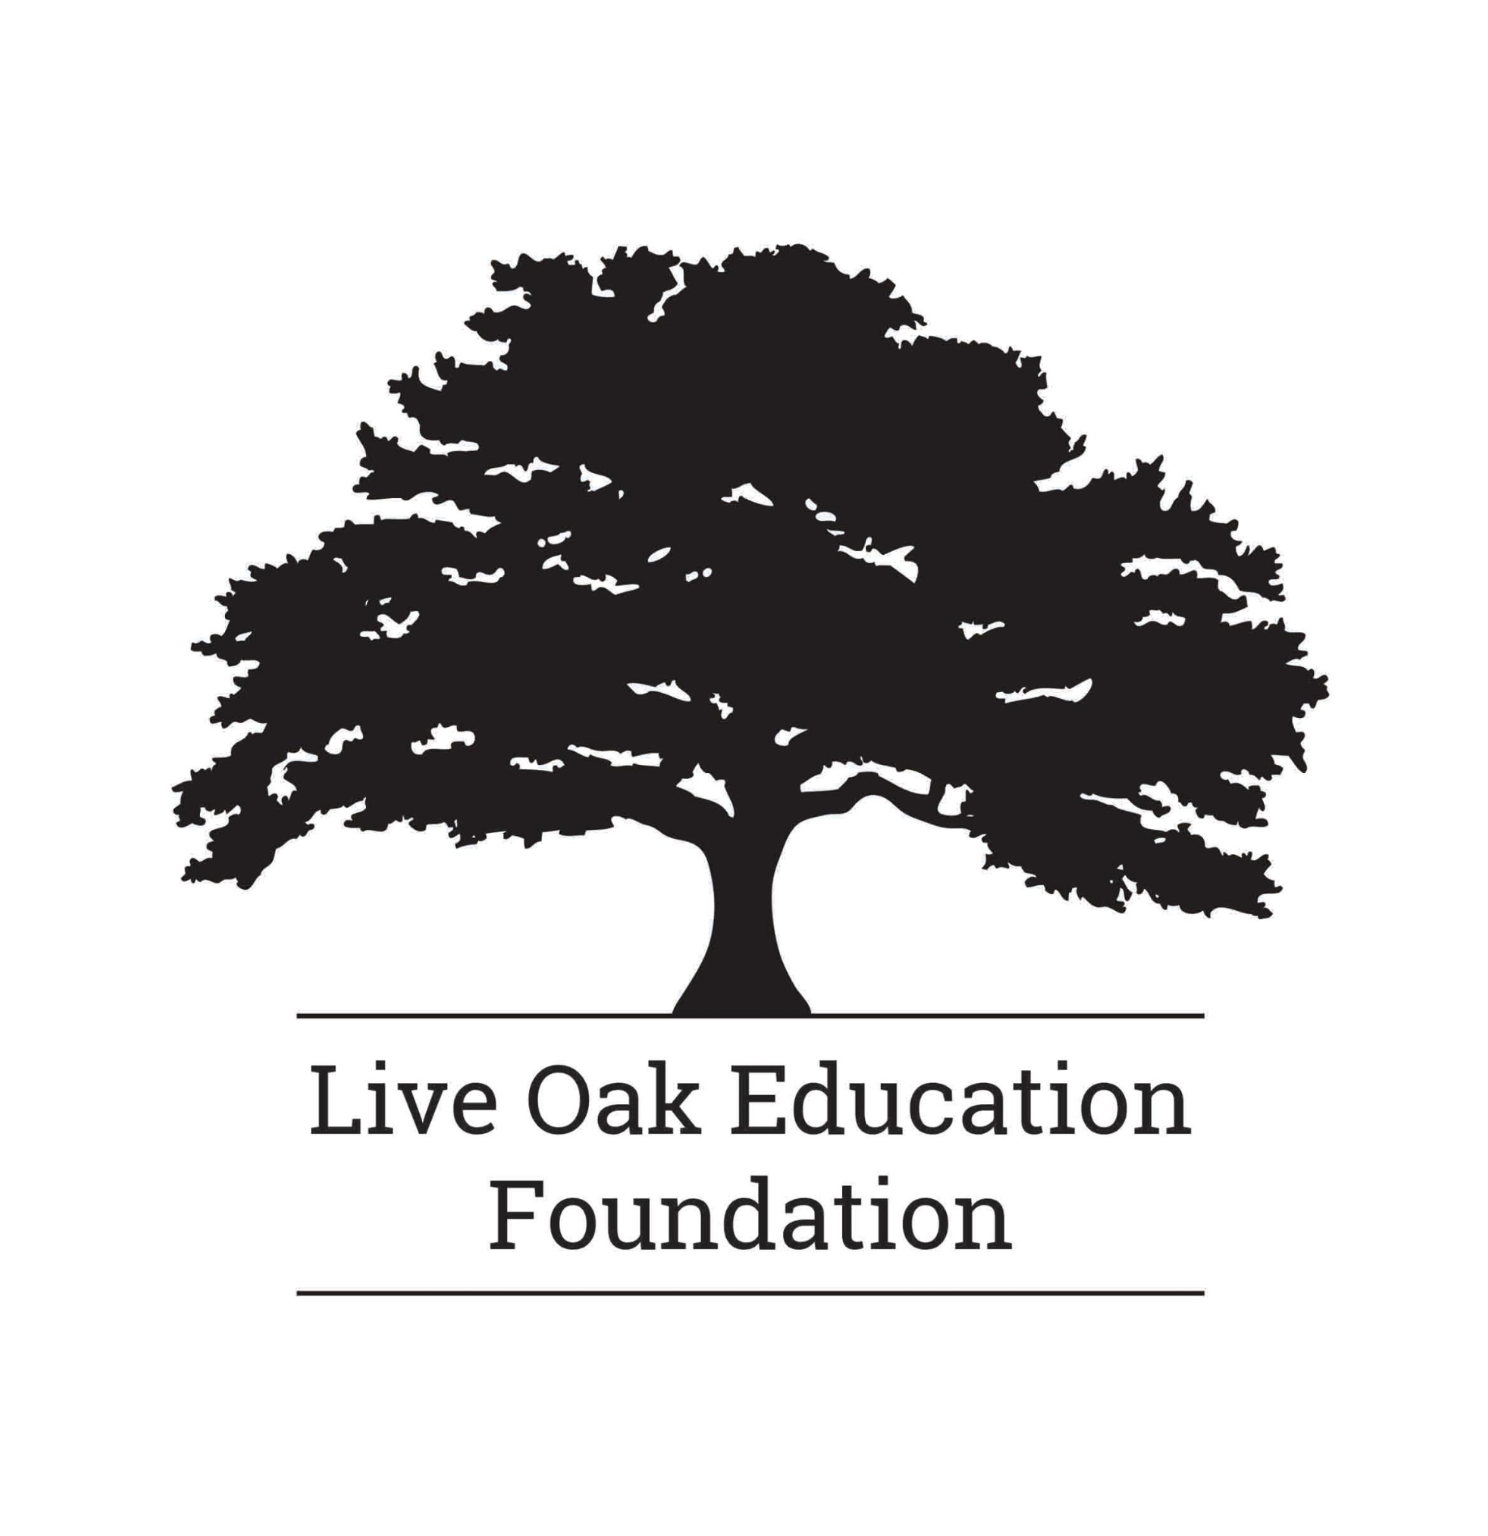 Live Oak Education Foundation